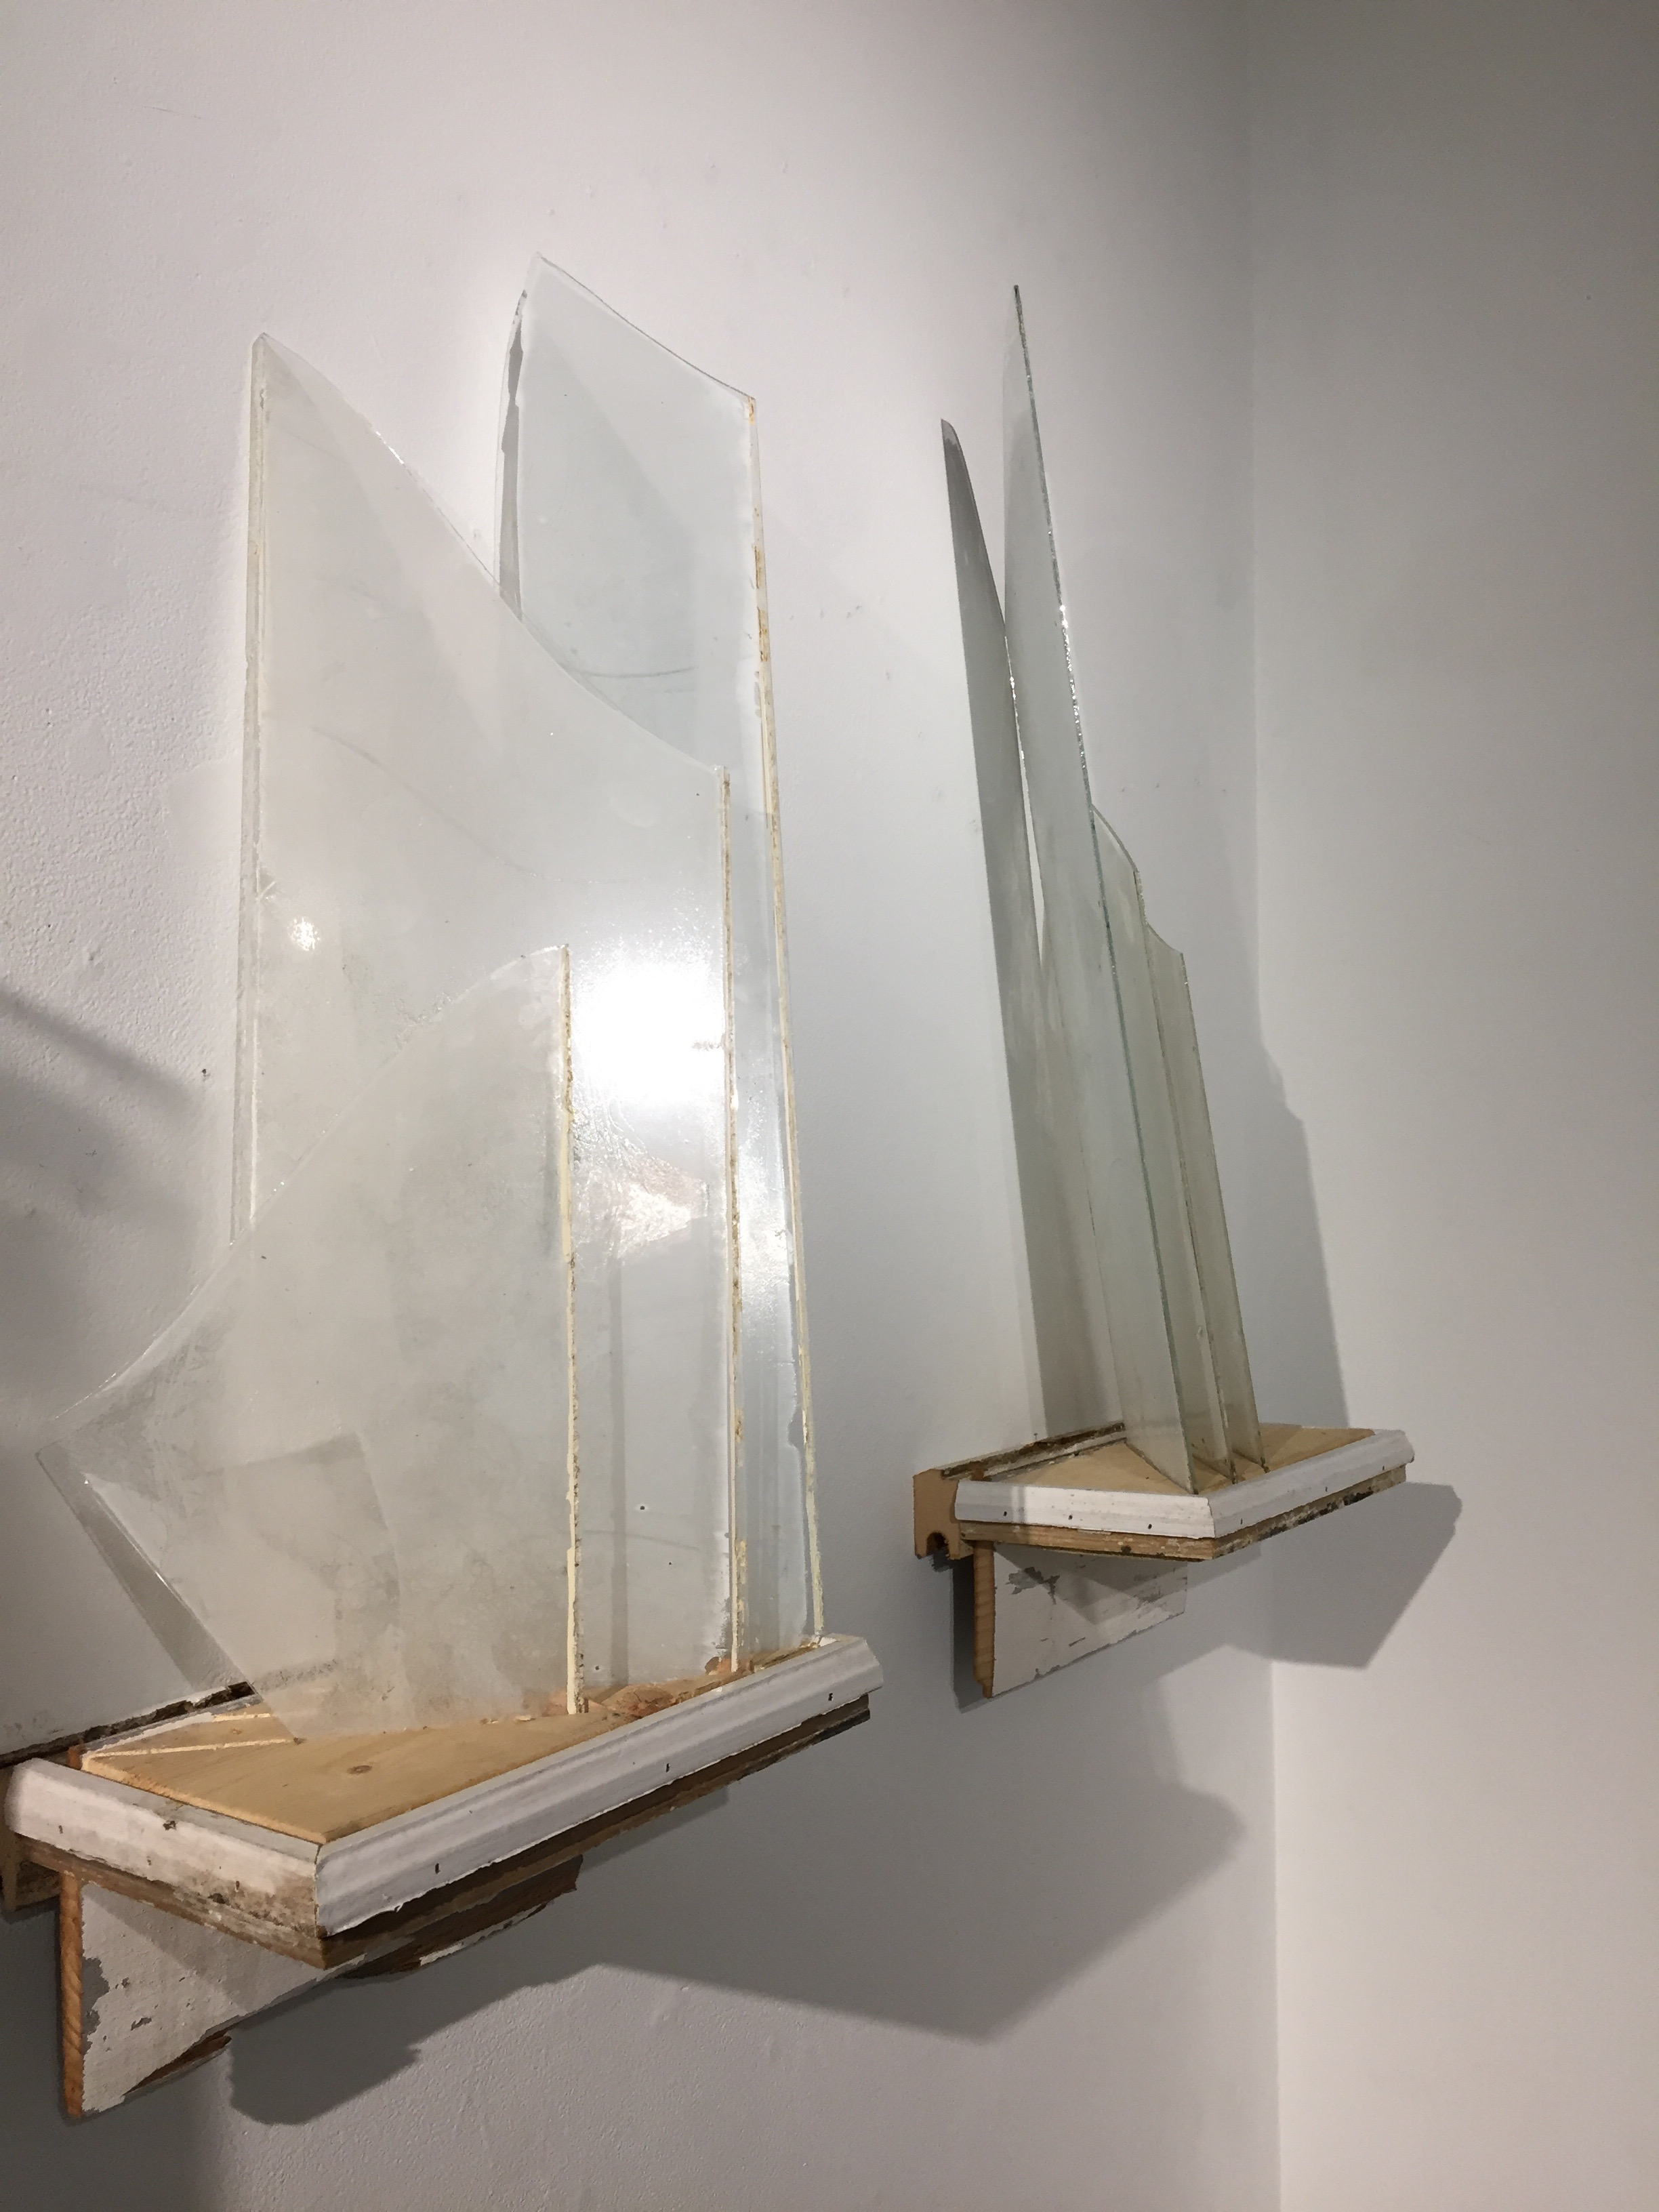 Shards of glass with screen print images